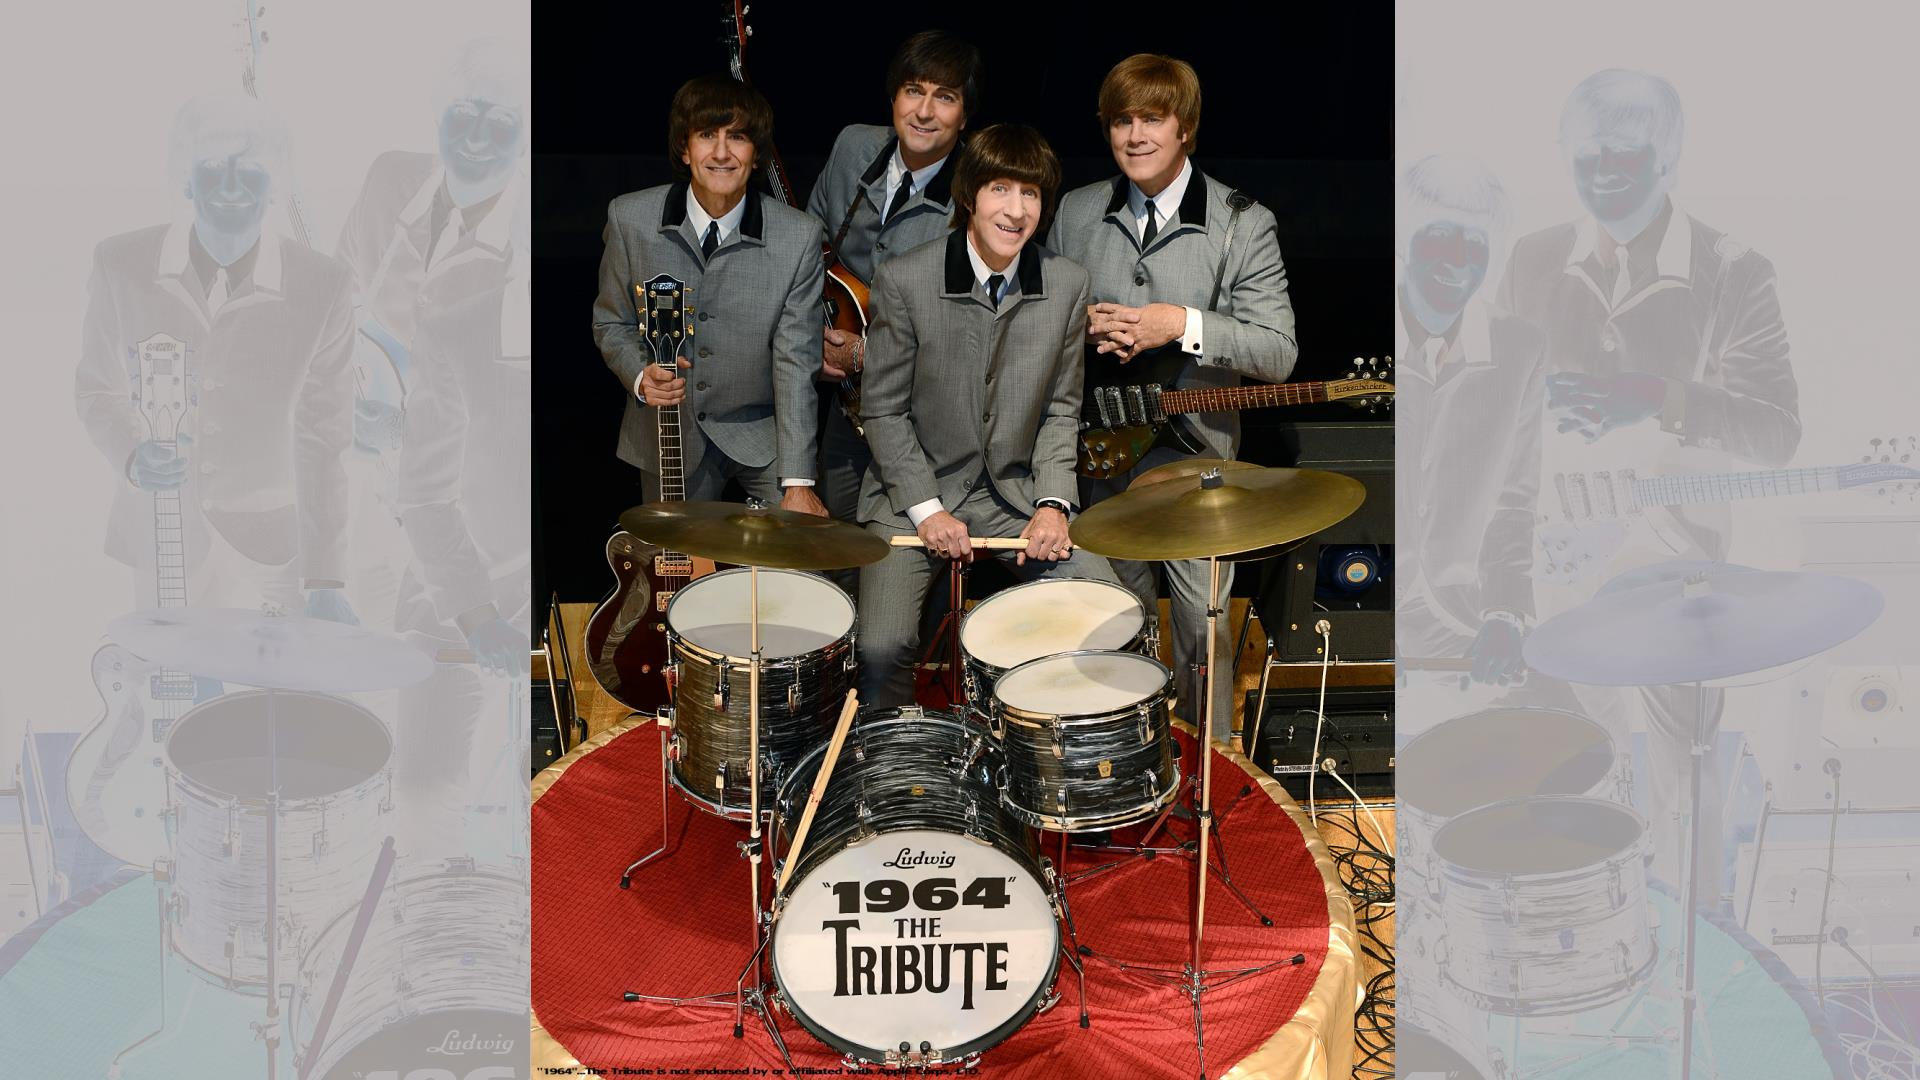 1964 The Tribute - BPE Productions